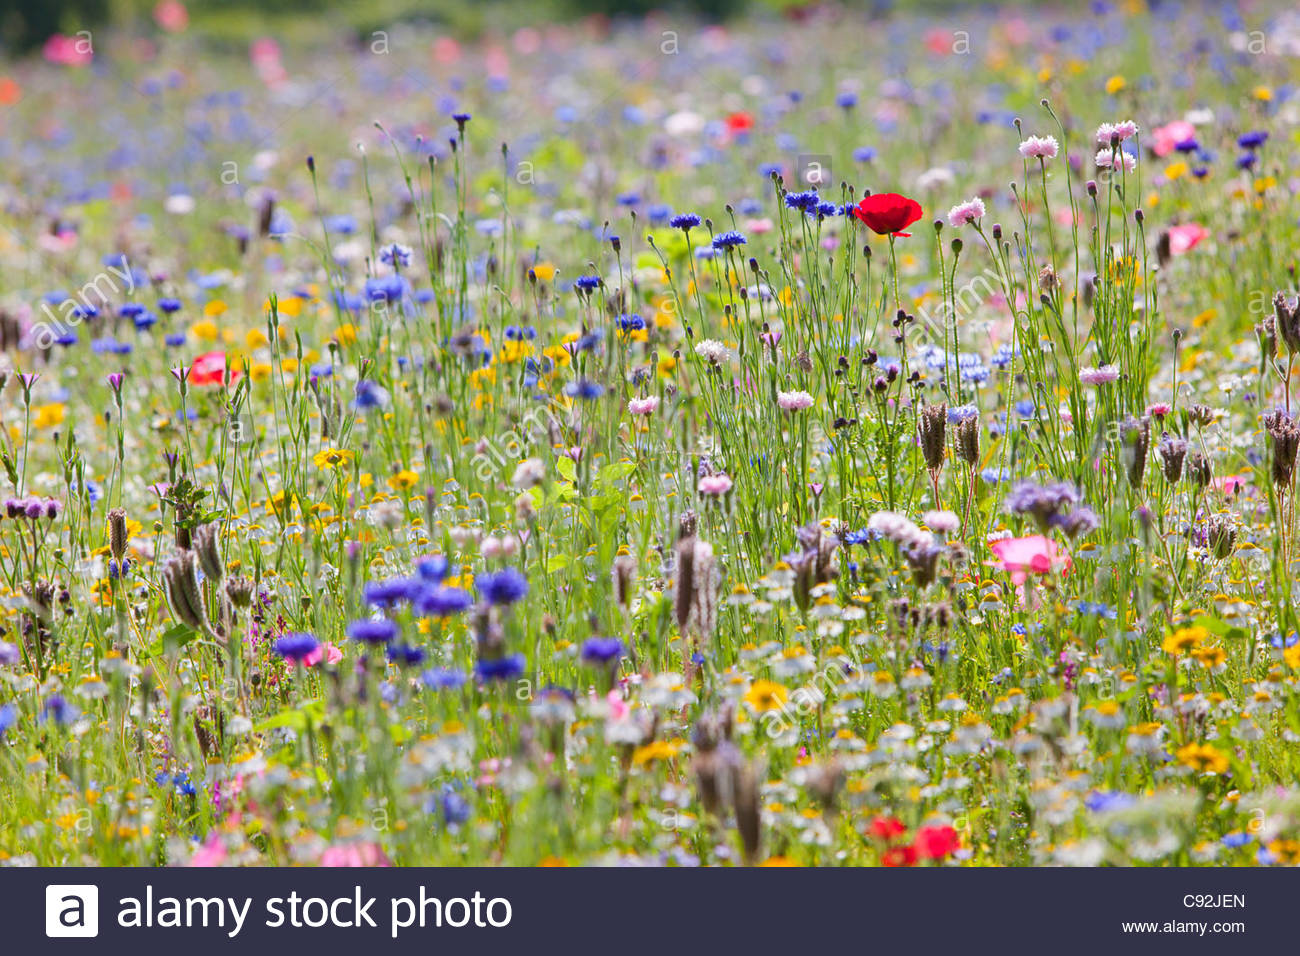 Close up of vibrant wildflowers in sunny field - Stock Image